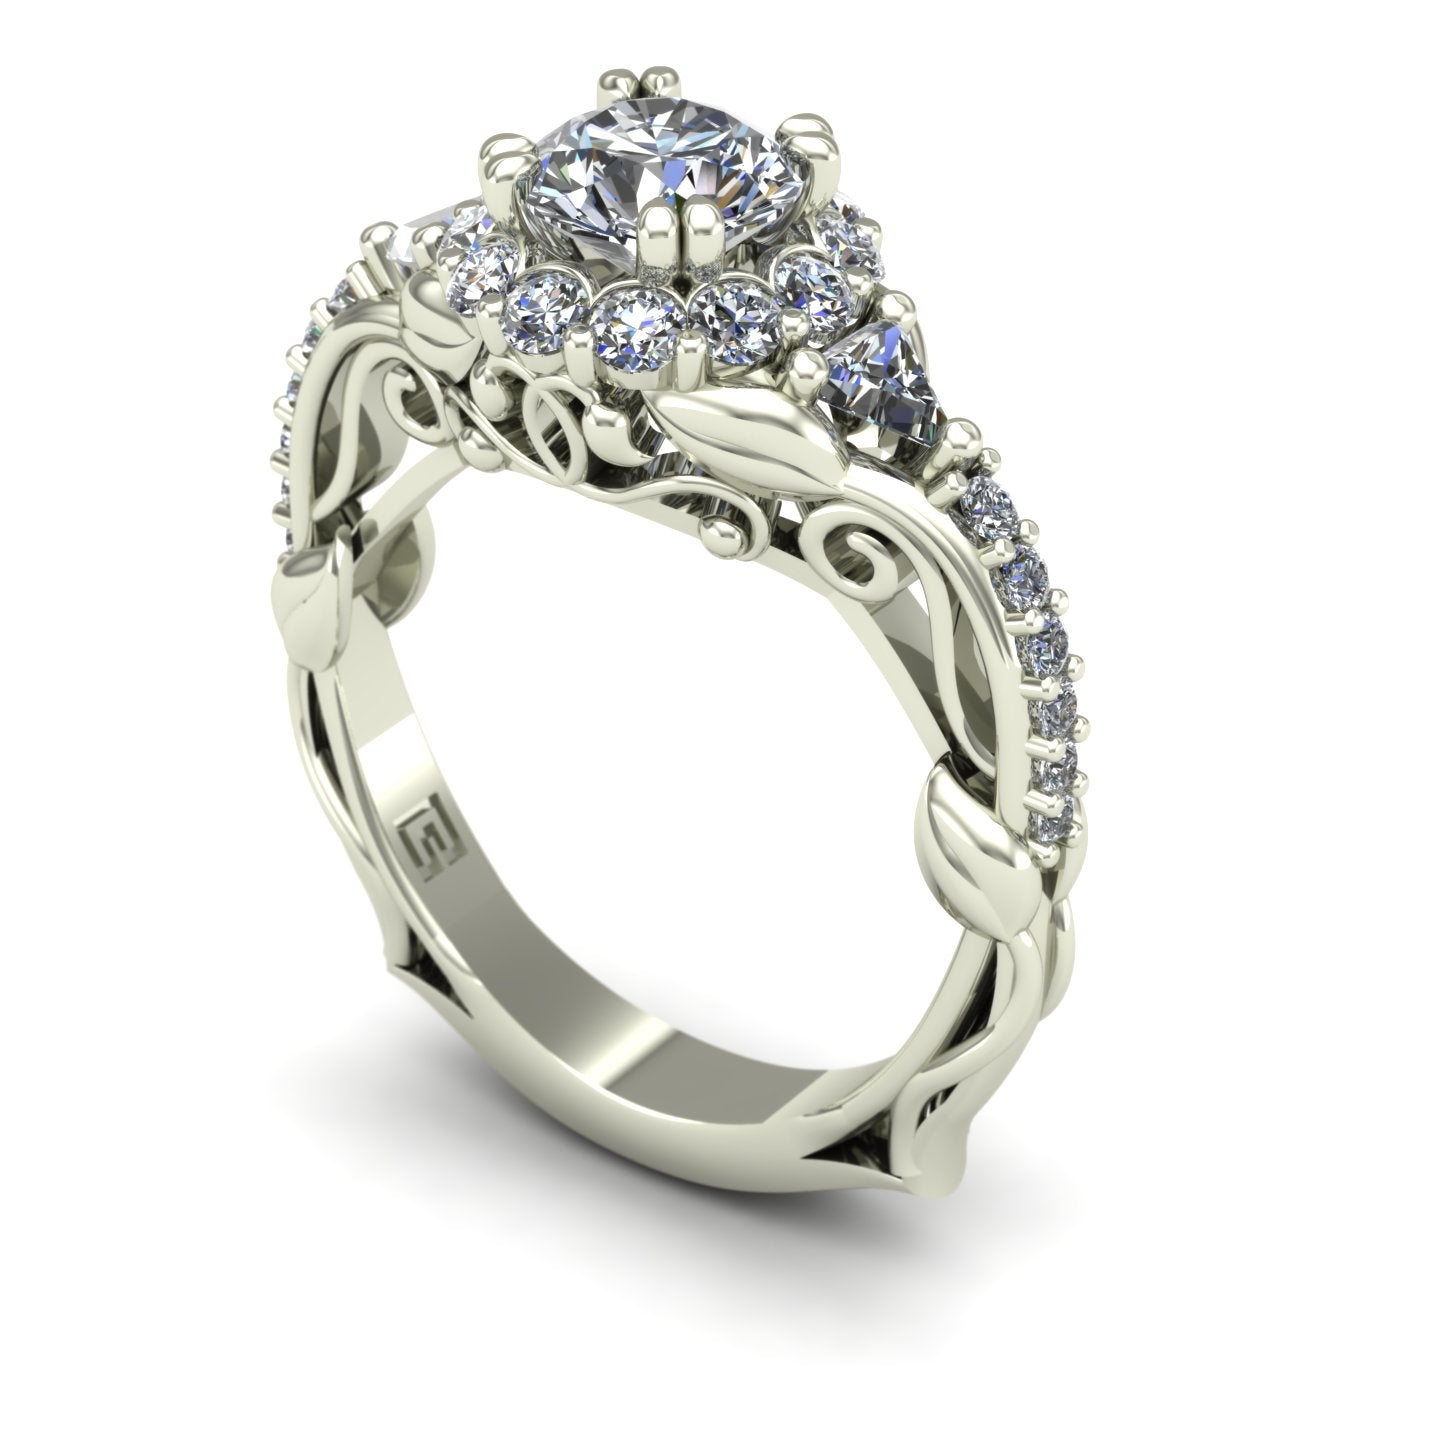 Diamond halo engagement ring with trillions and vines in 14k white gold